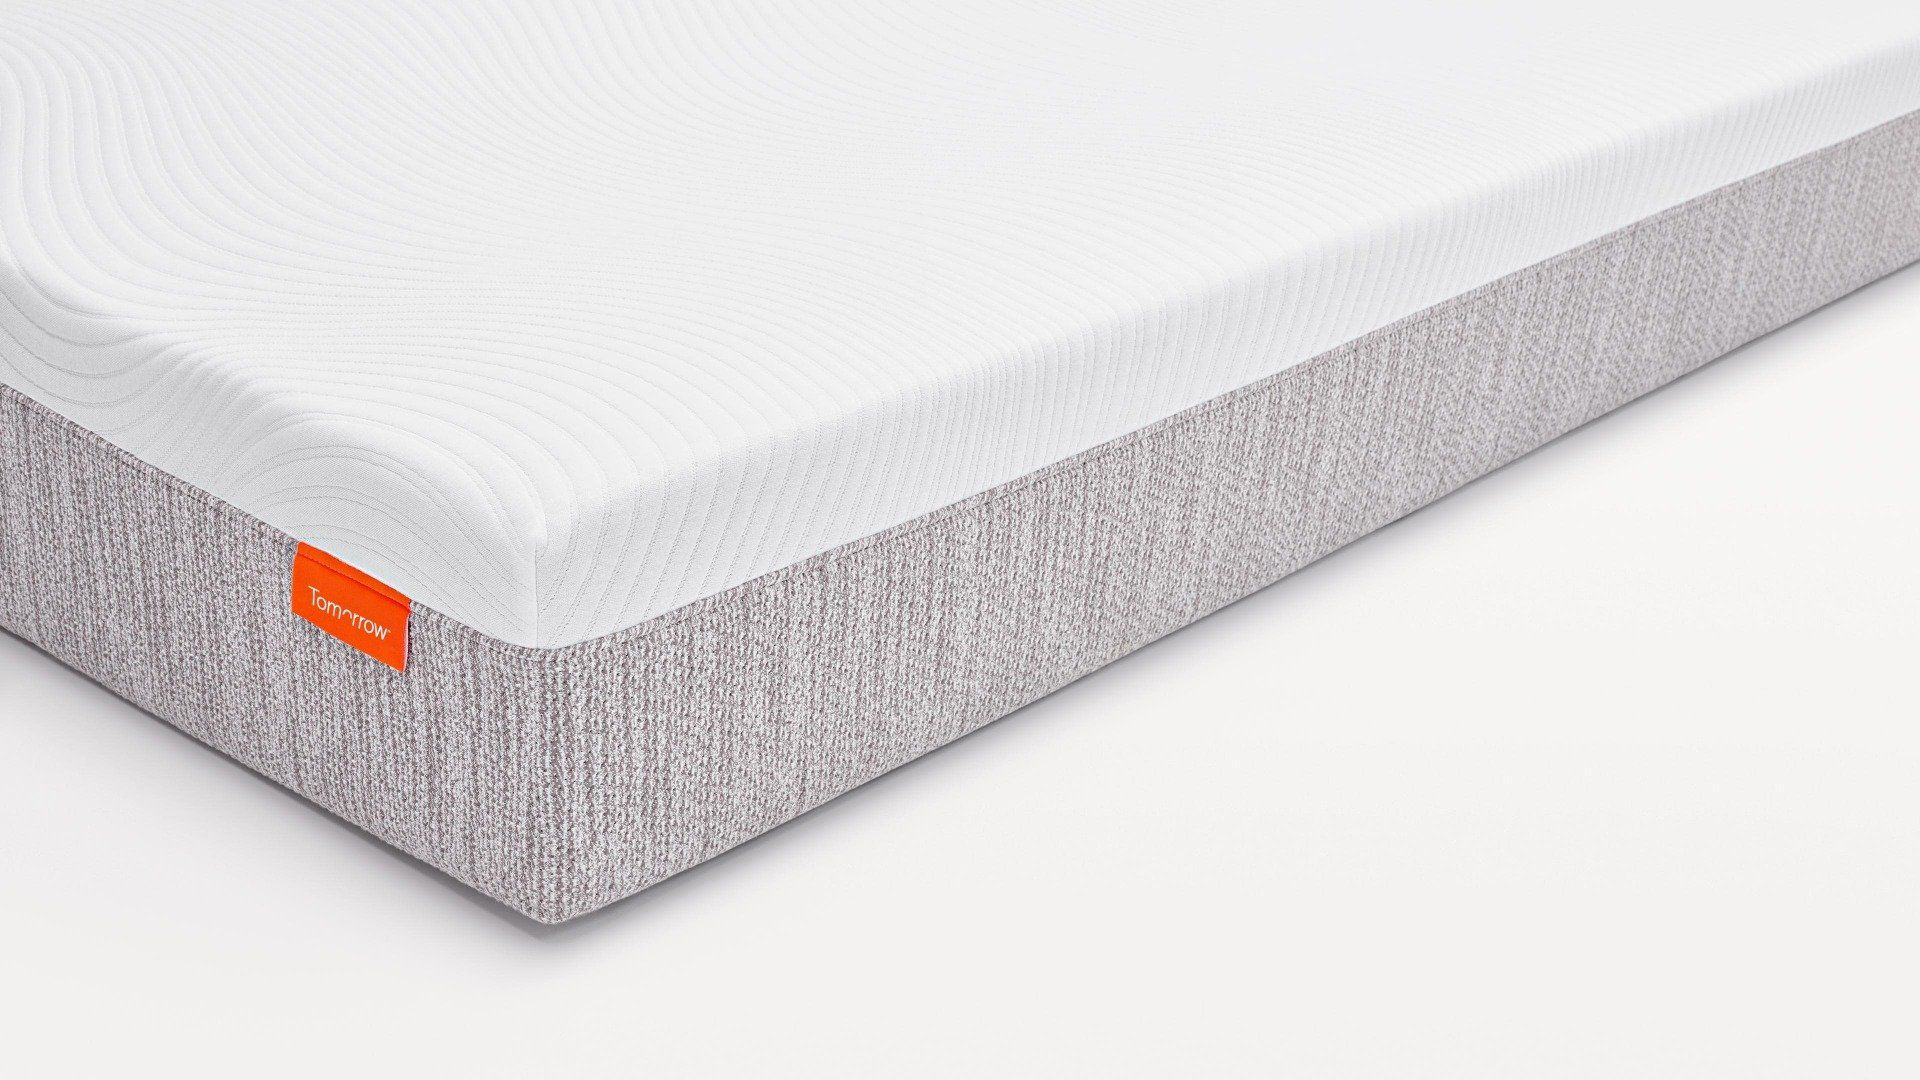 tomorrow sleep mattress review